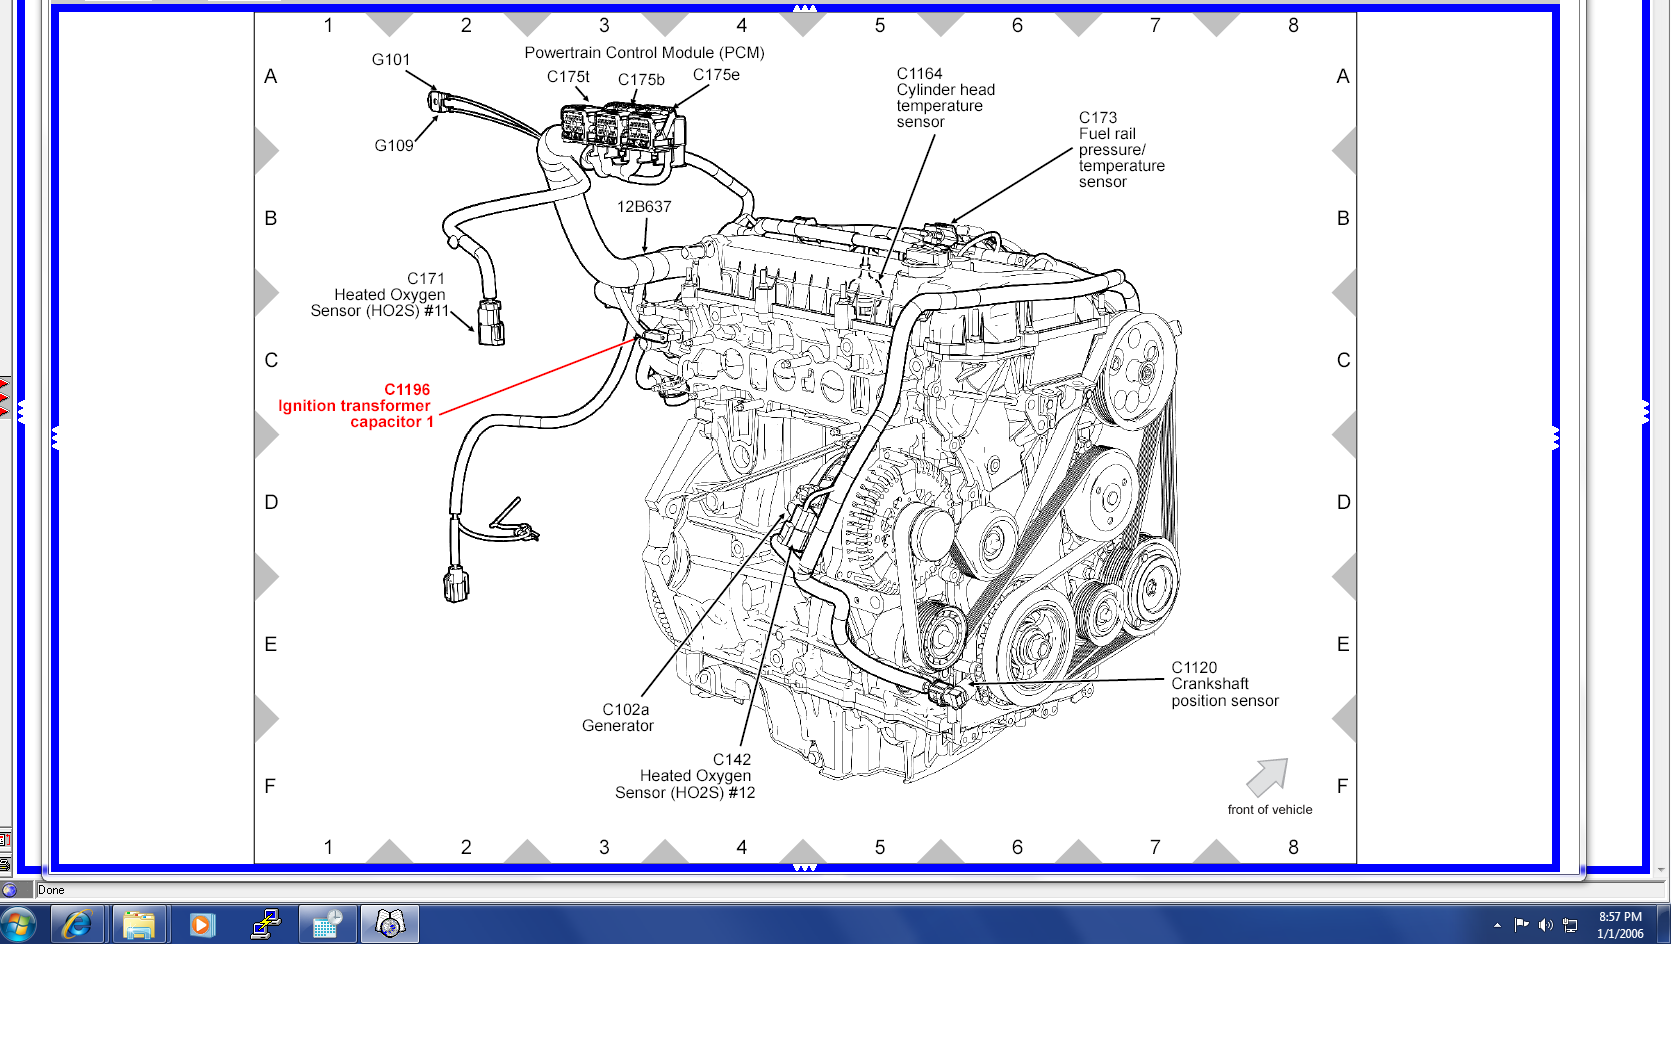 Ford Escape Cht on 1990 Dakota Heater Diagram